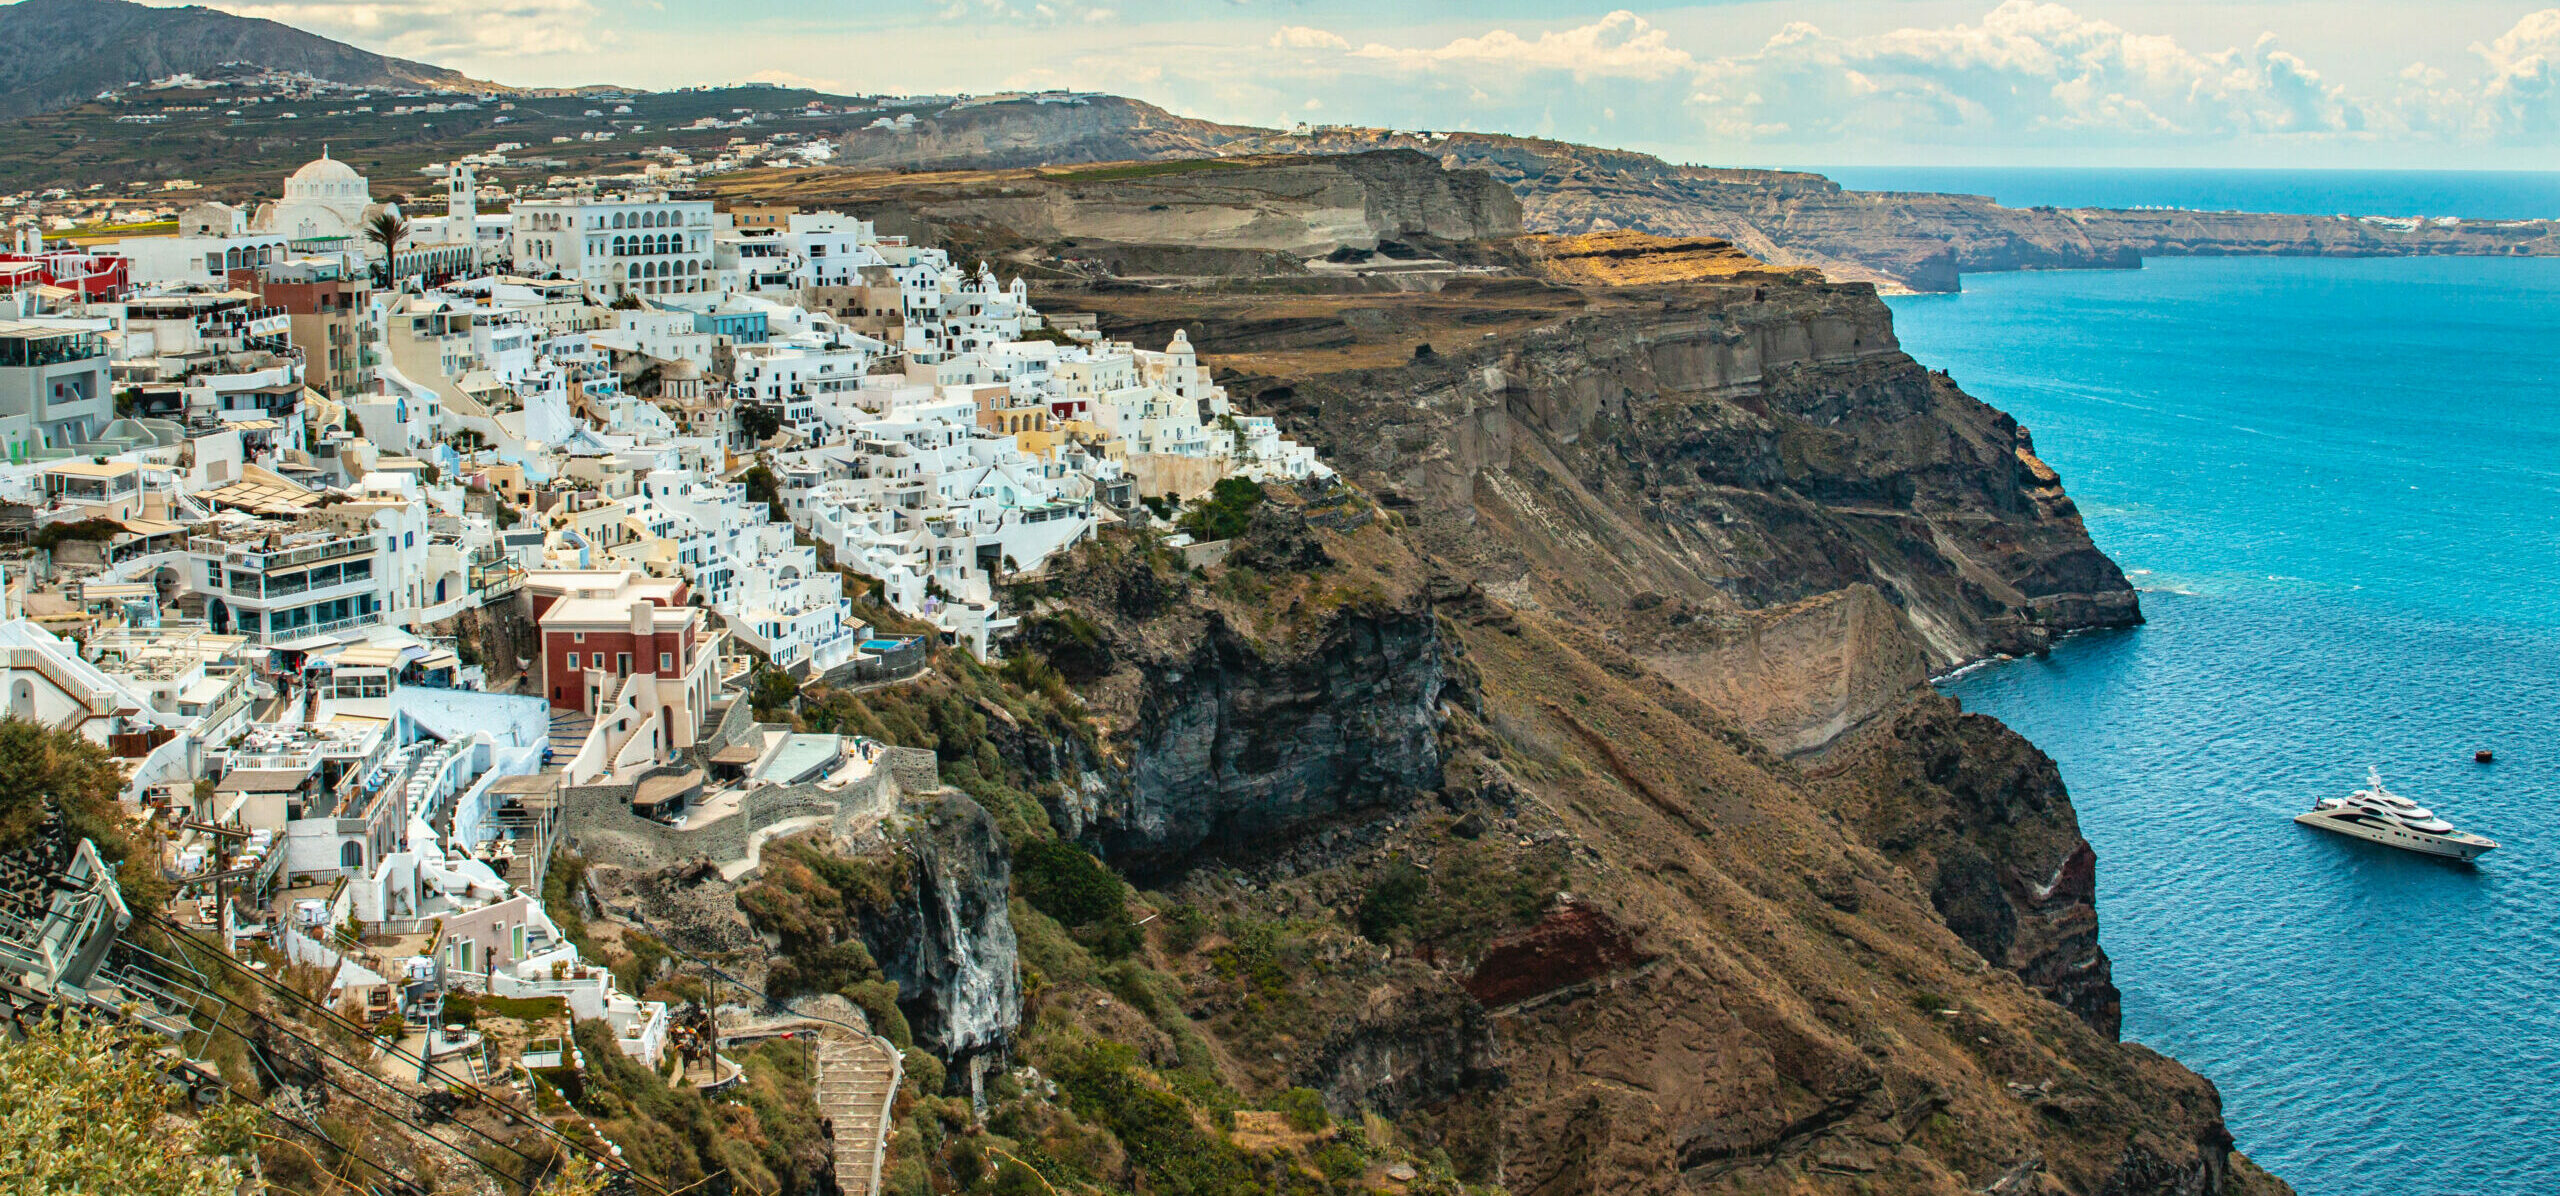 Caldera: The seductive one in the Cyclades